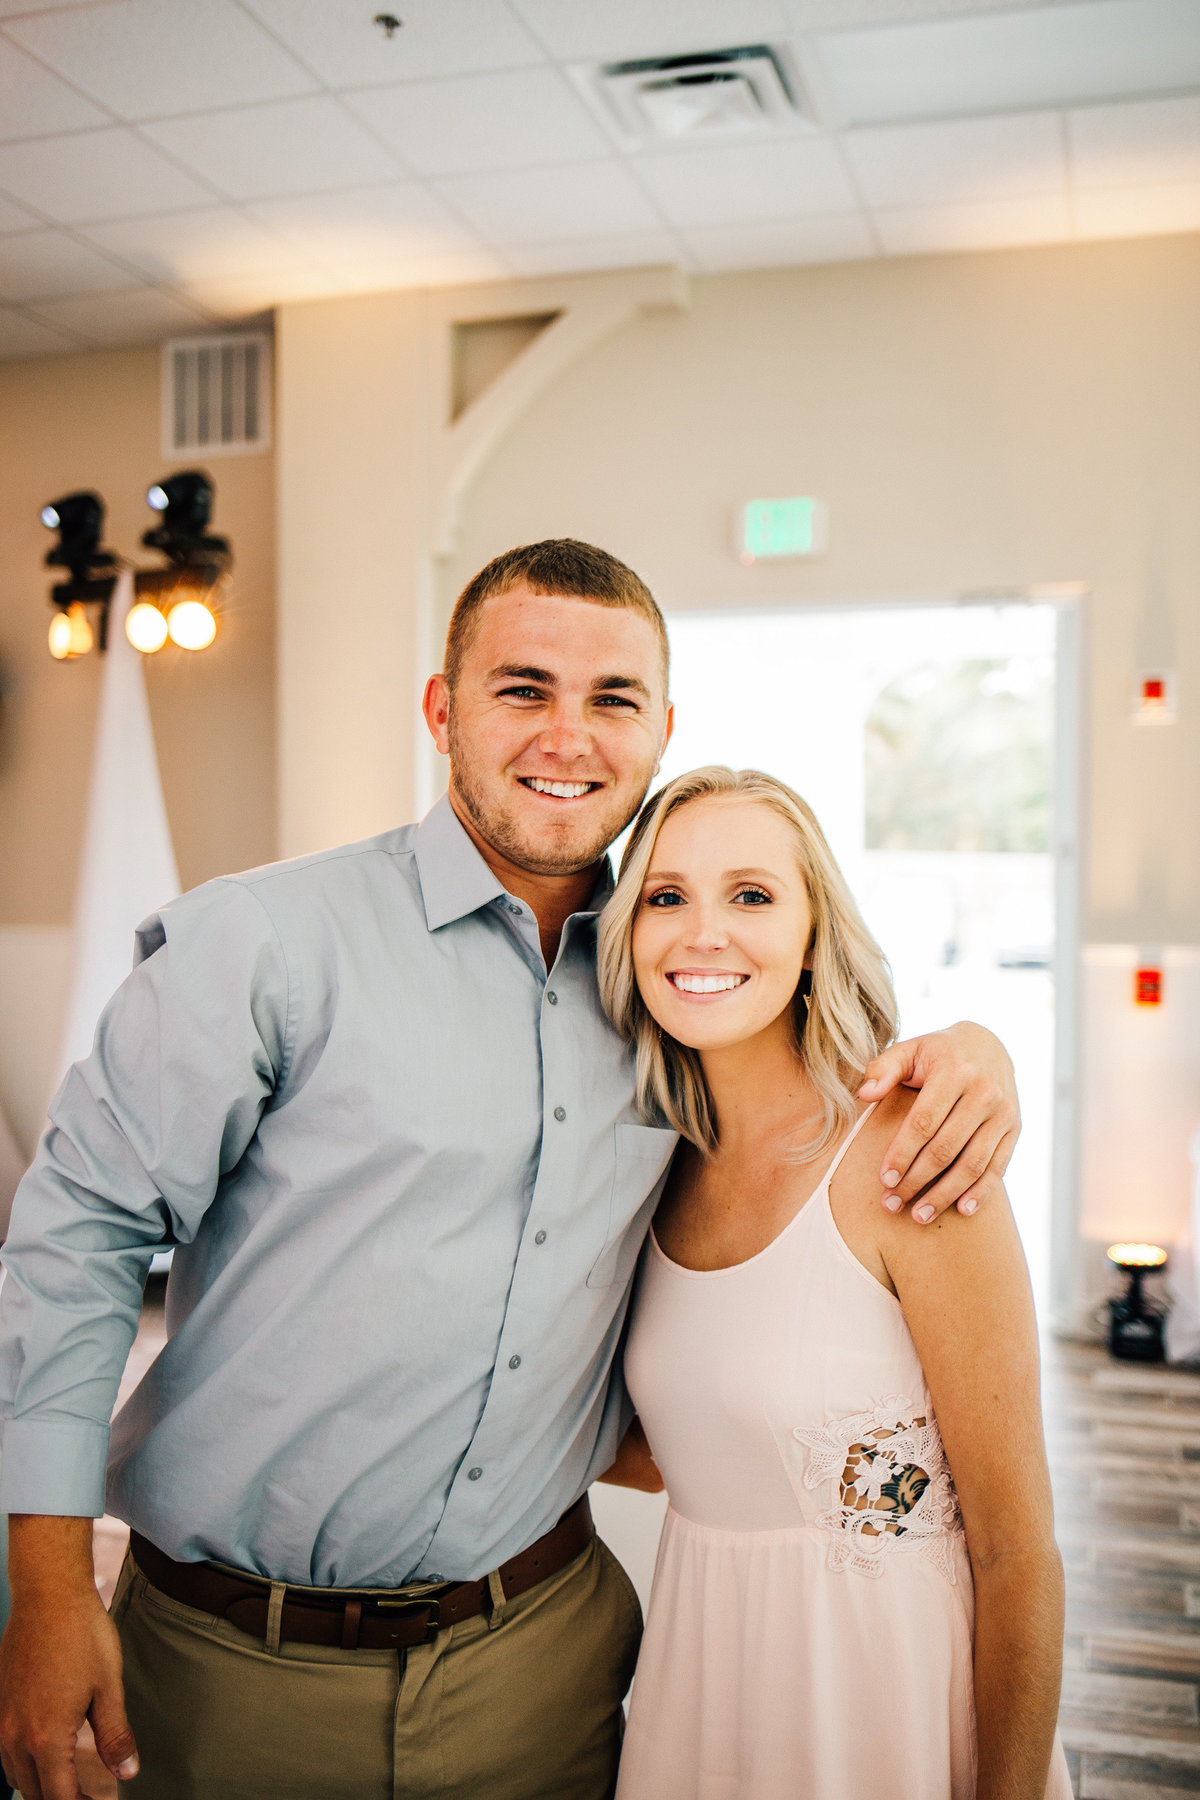 Kimberly_Hoyle_Photography_Kemp_Titusville_Florida_Wedding-16